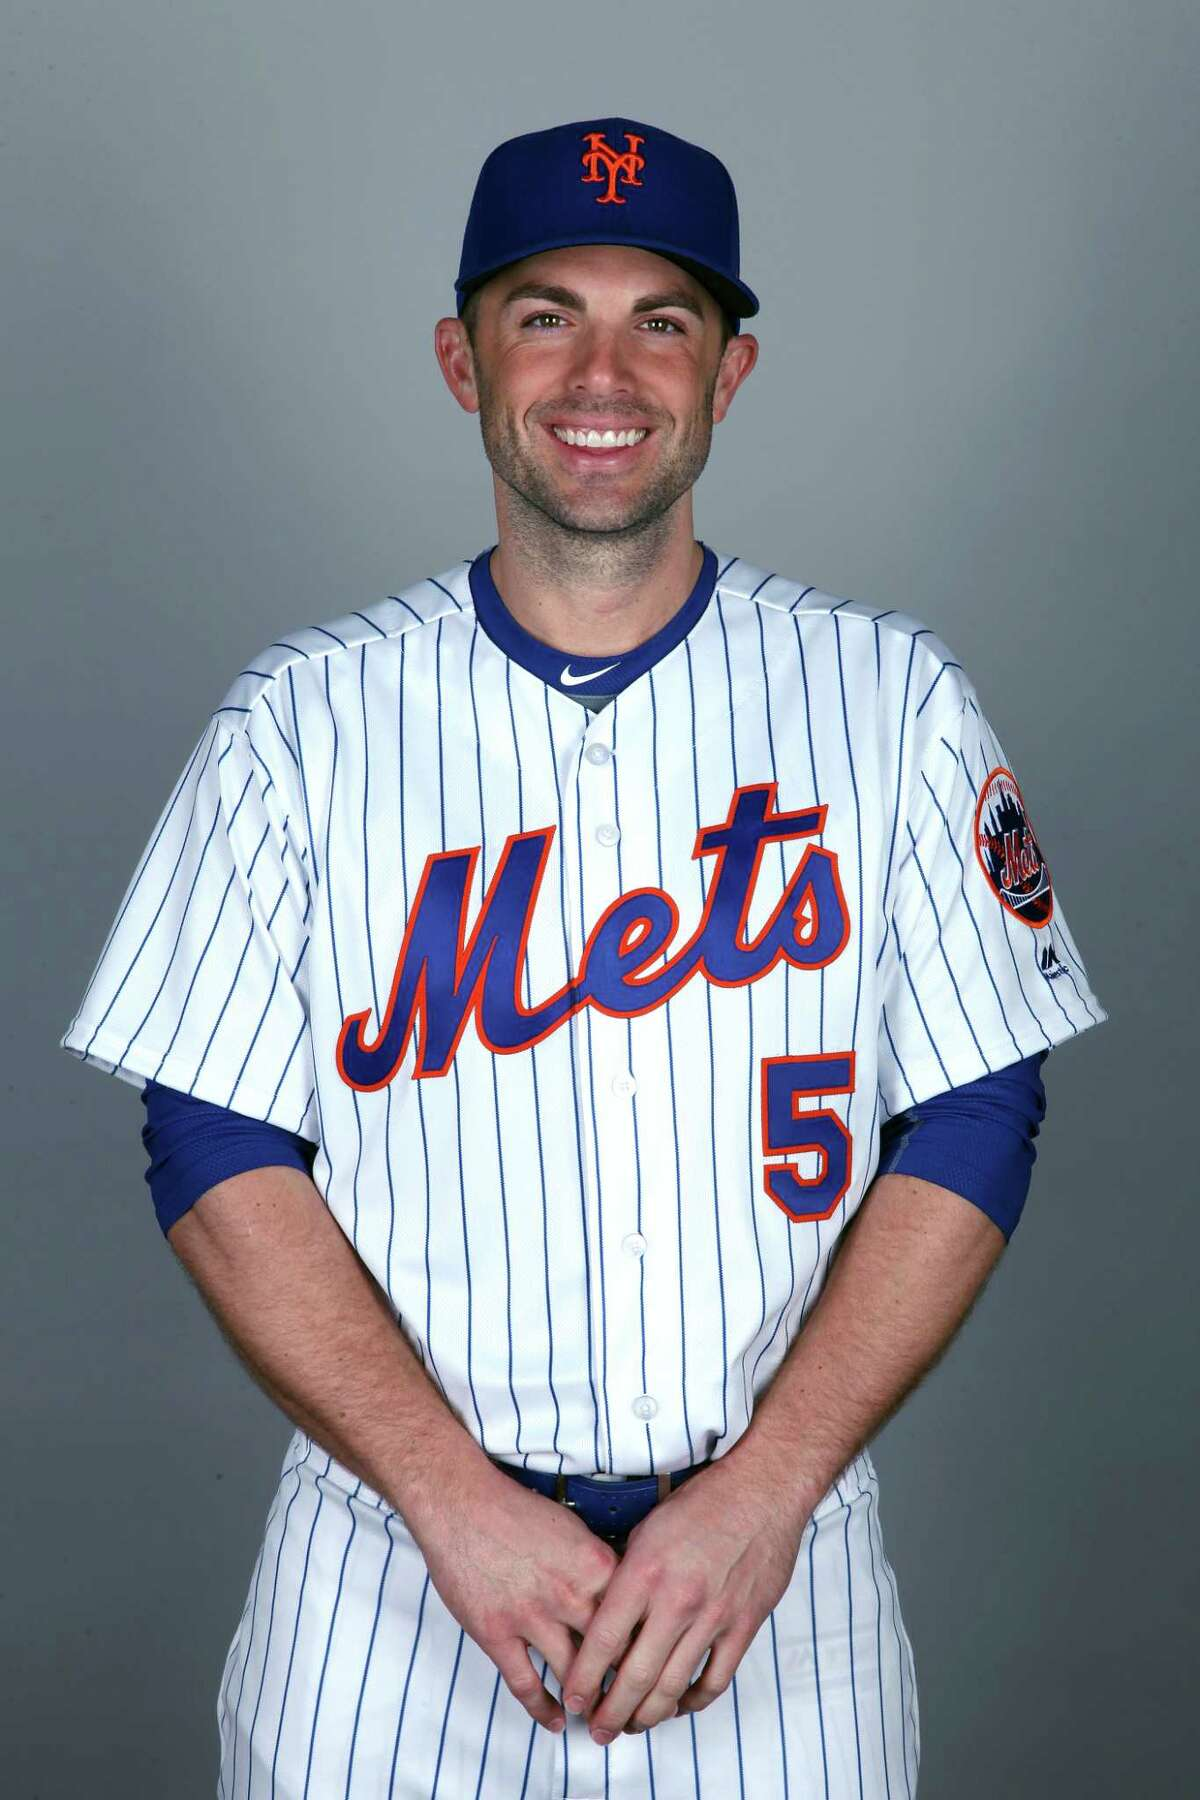 PORT ST. LUCIE, FL - FEBRUARY 22: David Wright #5 of the New York Mets poses during Photo Day on Wednesday, February 22, 2017 at Tradition Field in Port St. Lucie, Florida. (Photo by Eliot J. Schechter/MLB Photos via Getty Images) *** Local Caption *** David Wright